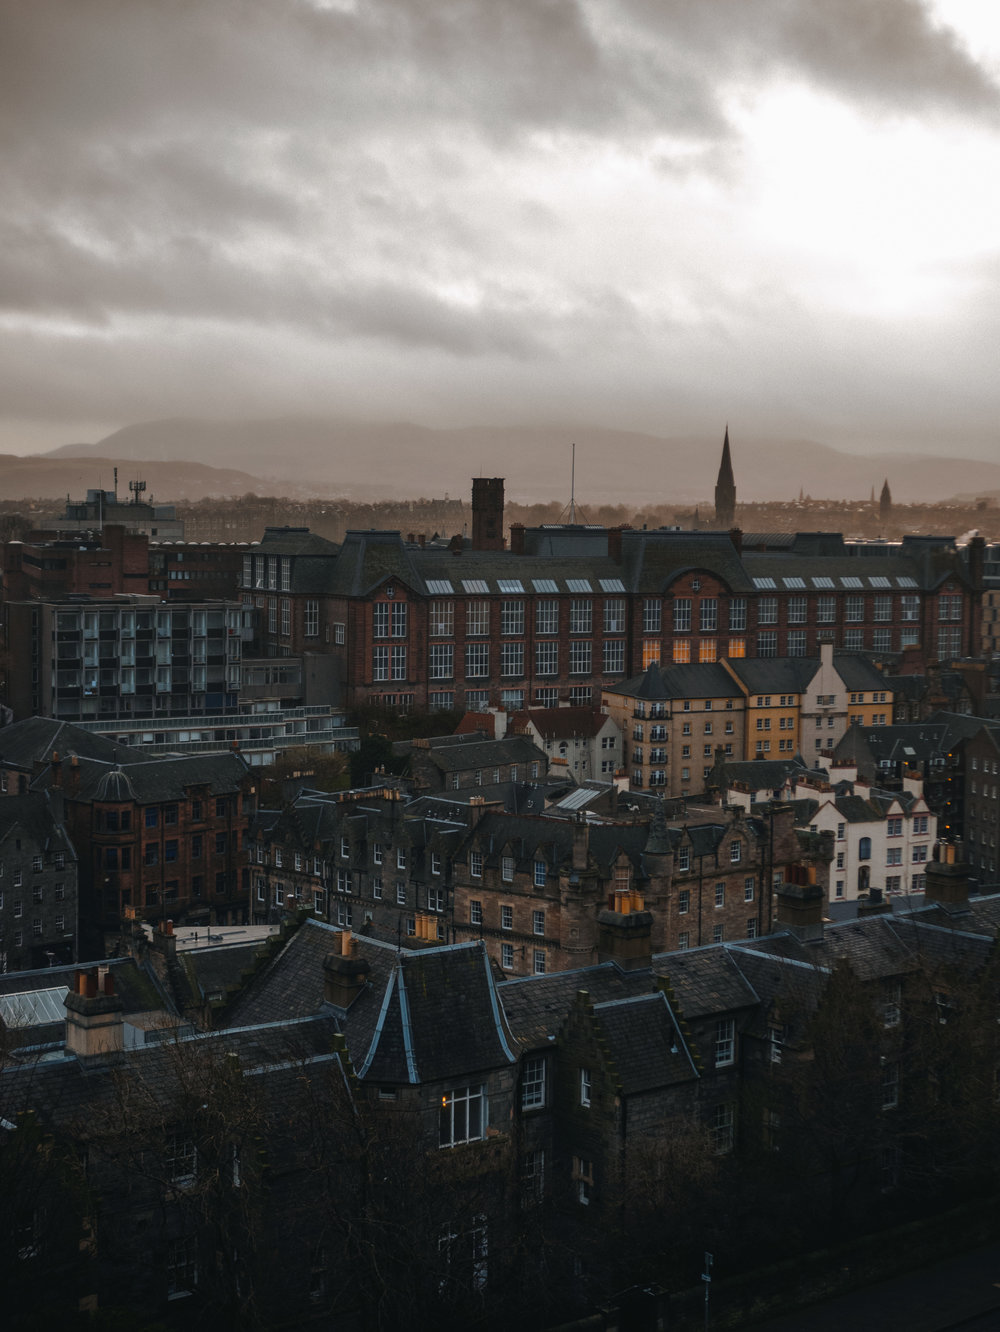 Rooftops in Edinburgh